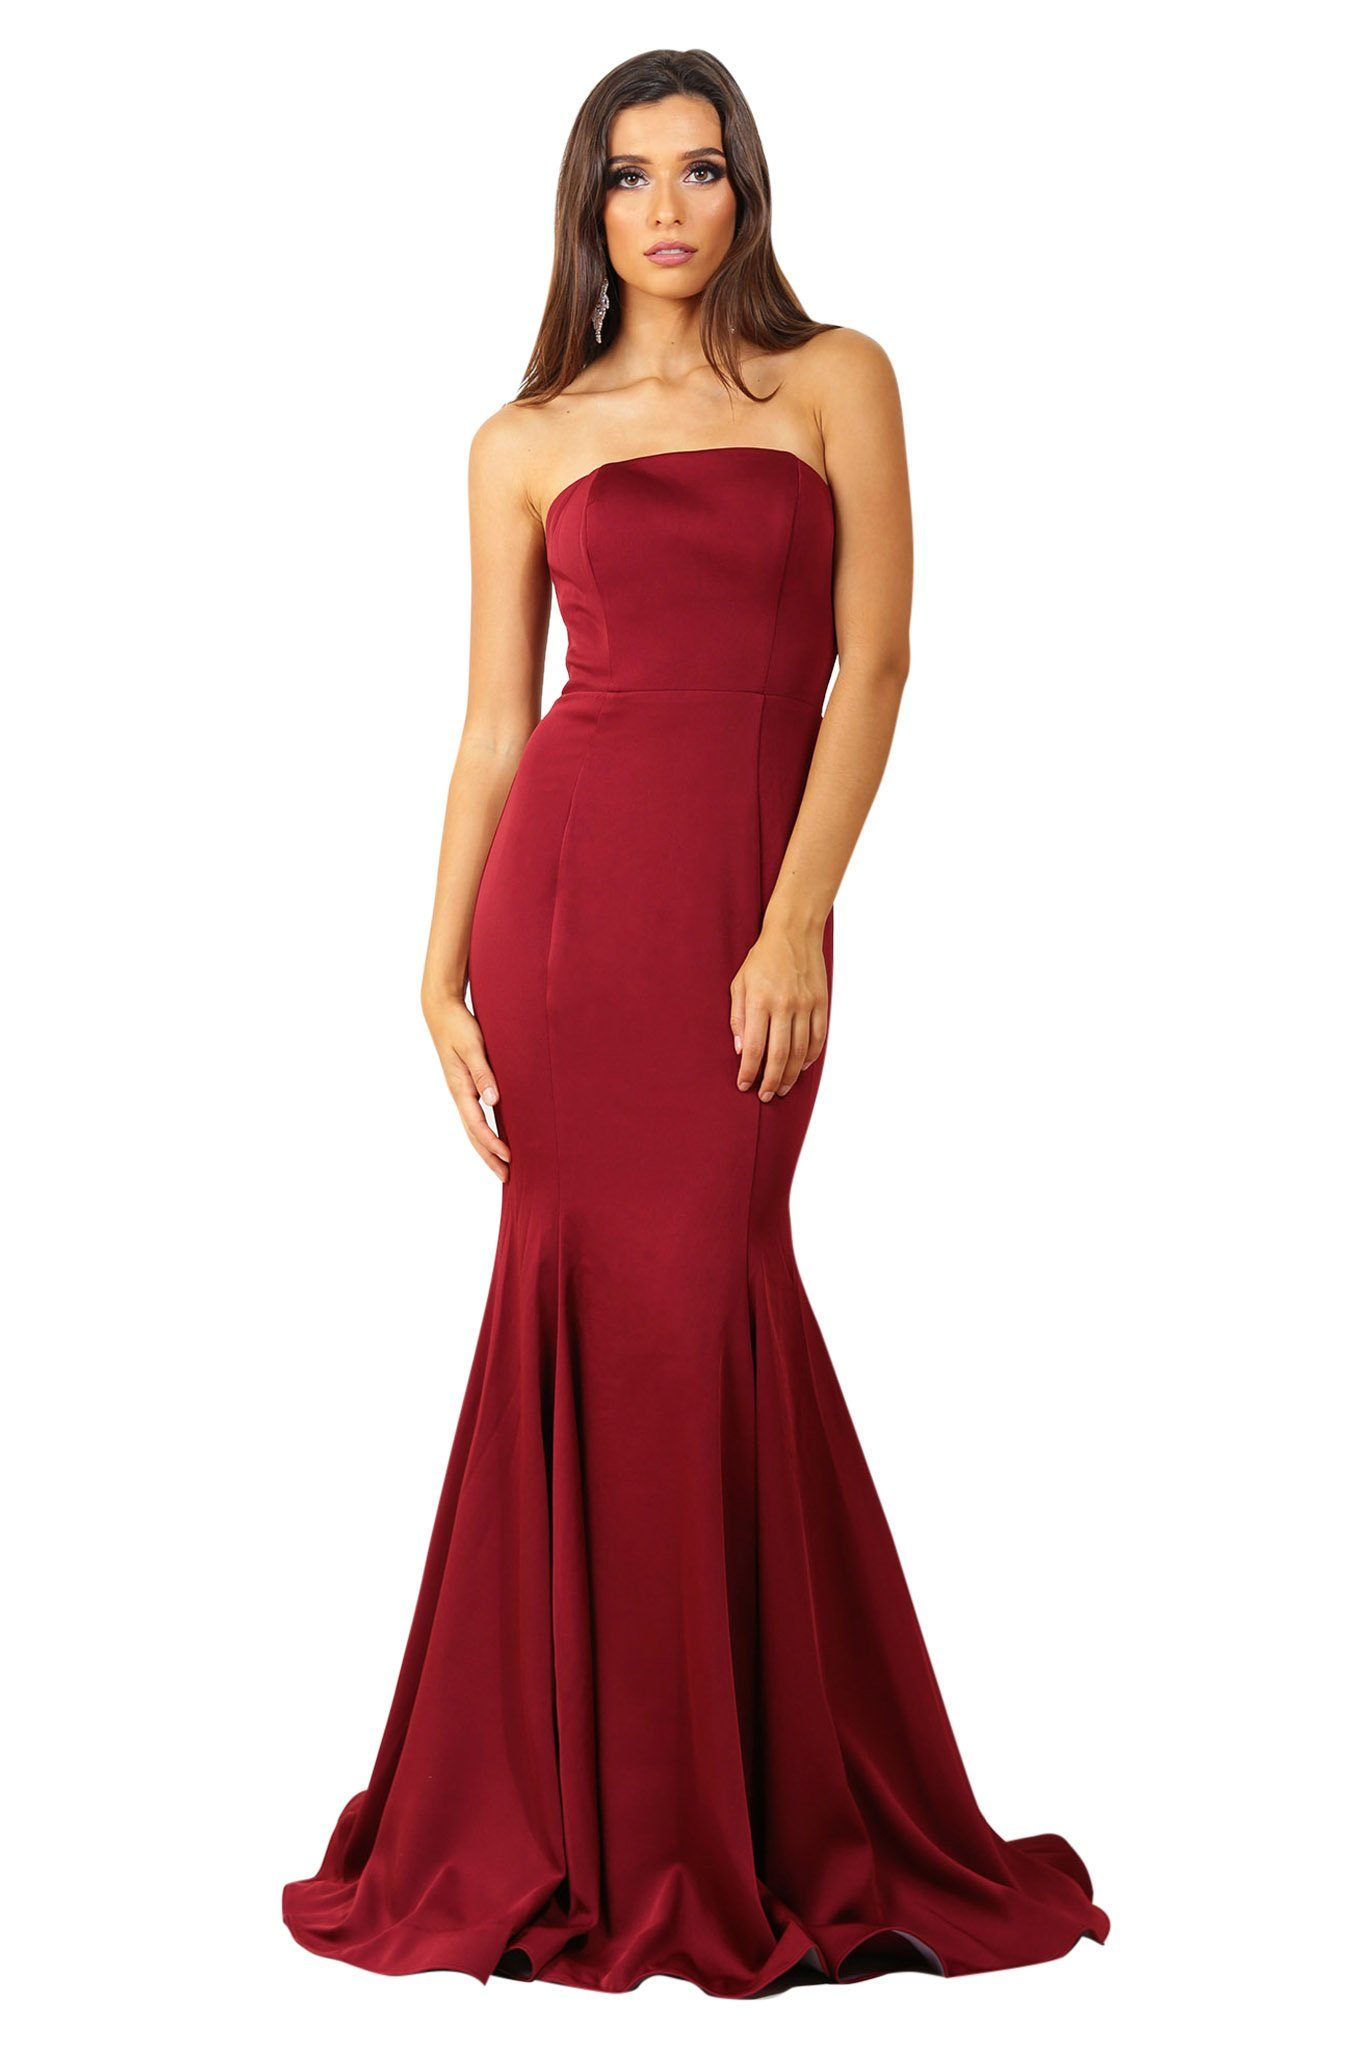 Wine red colored strapless straight neckline boned bodice fitted evening gown with floor sweeping train